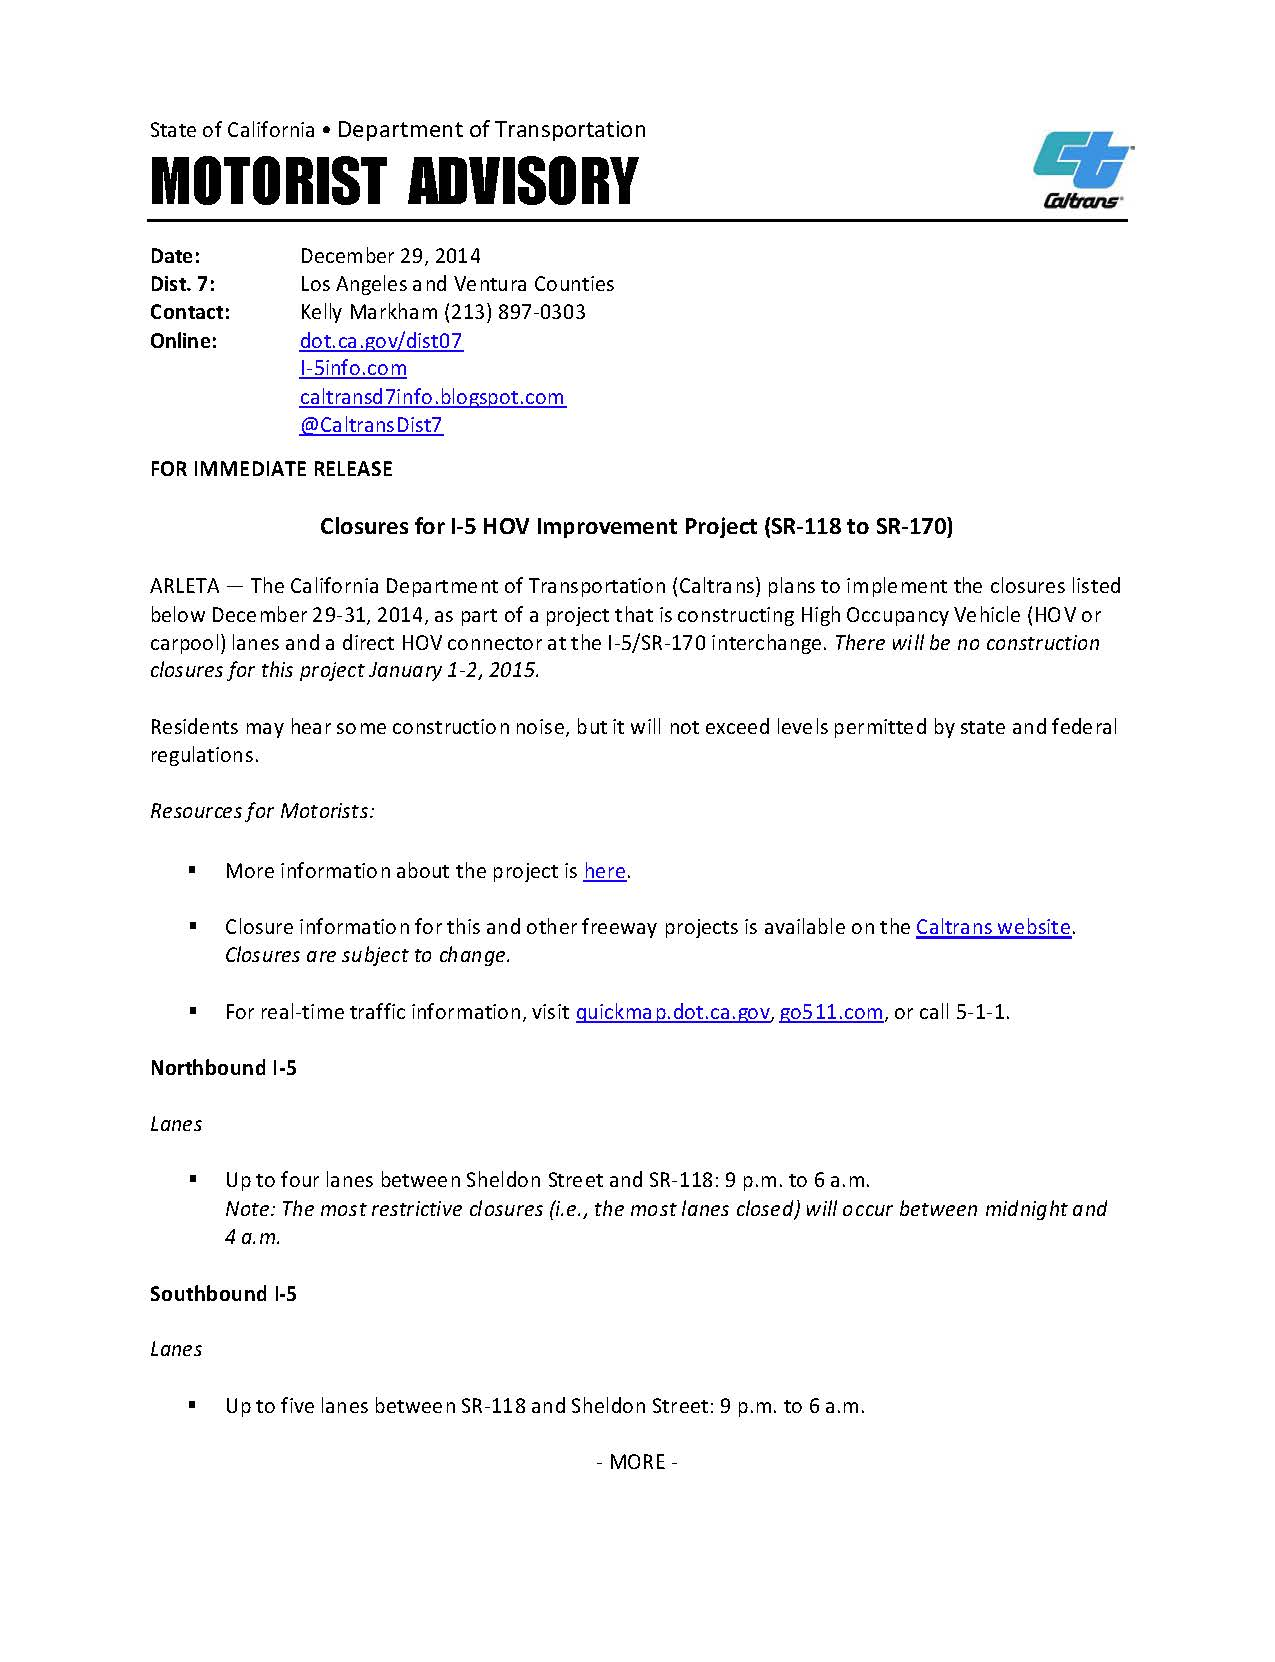 SR-118 to SR-170: Closures for Dec  29-31, 2014